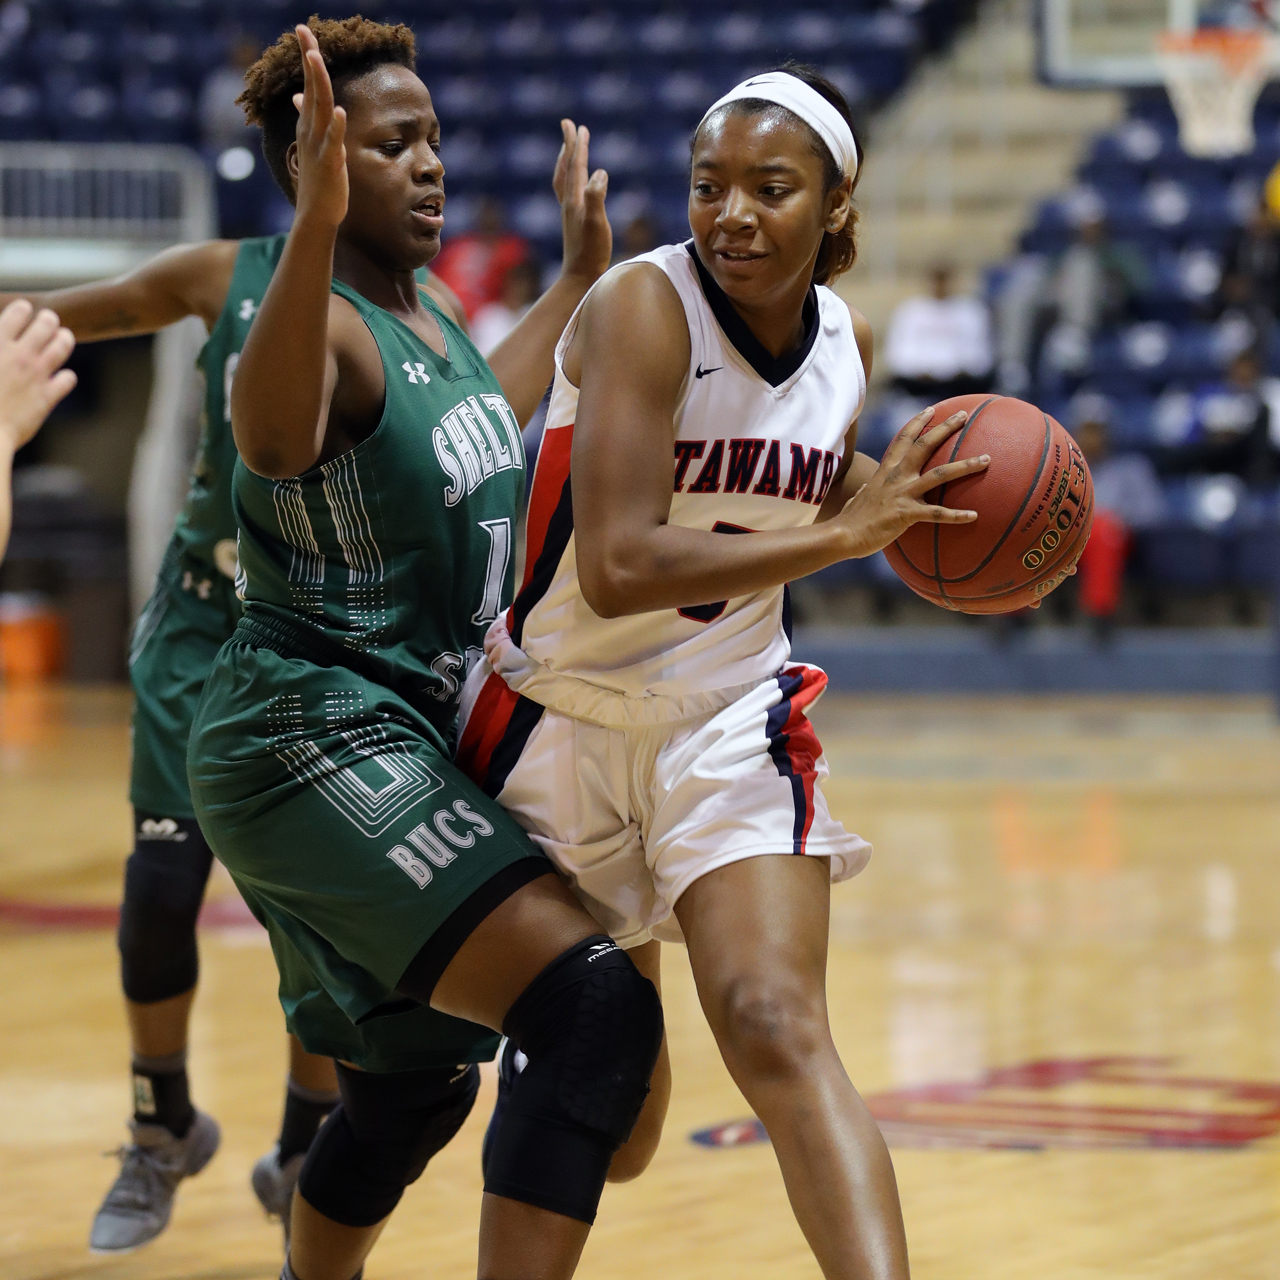 Lady Indians rolls to 79-47 win at Baton Rouge